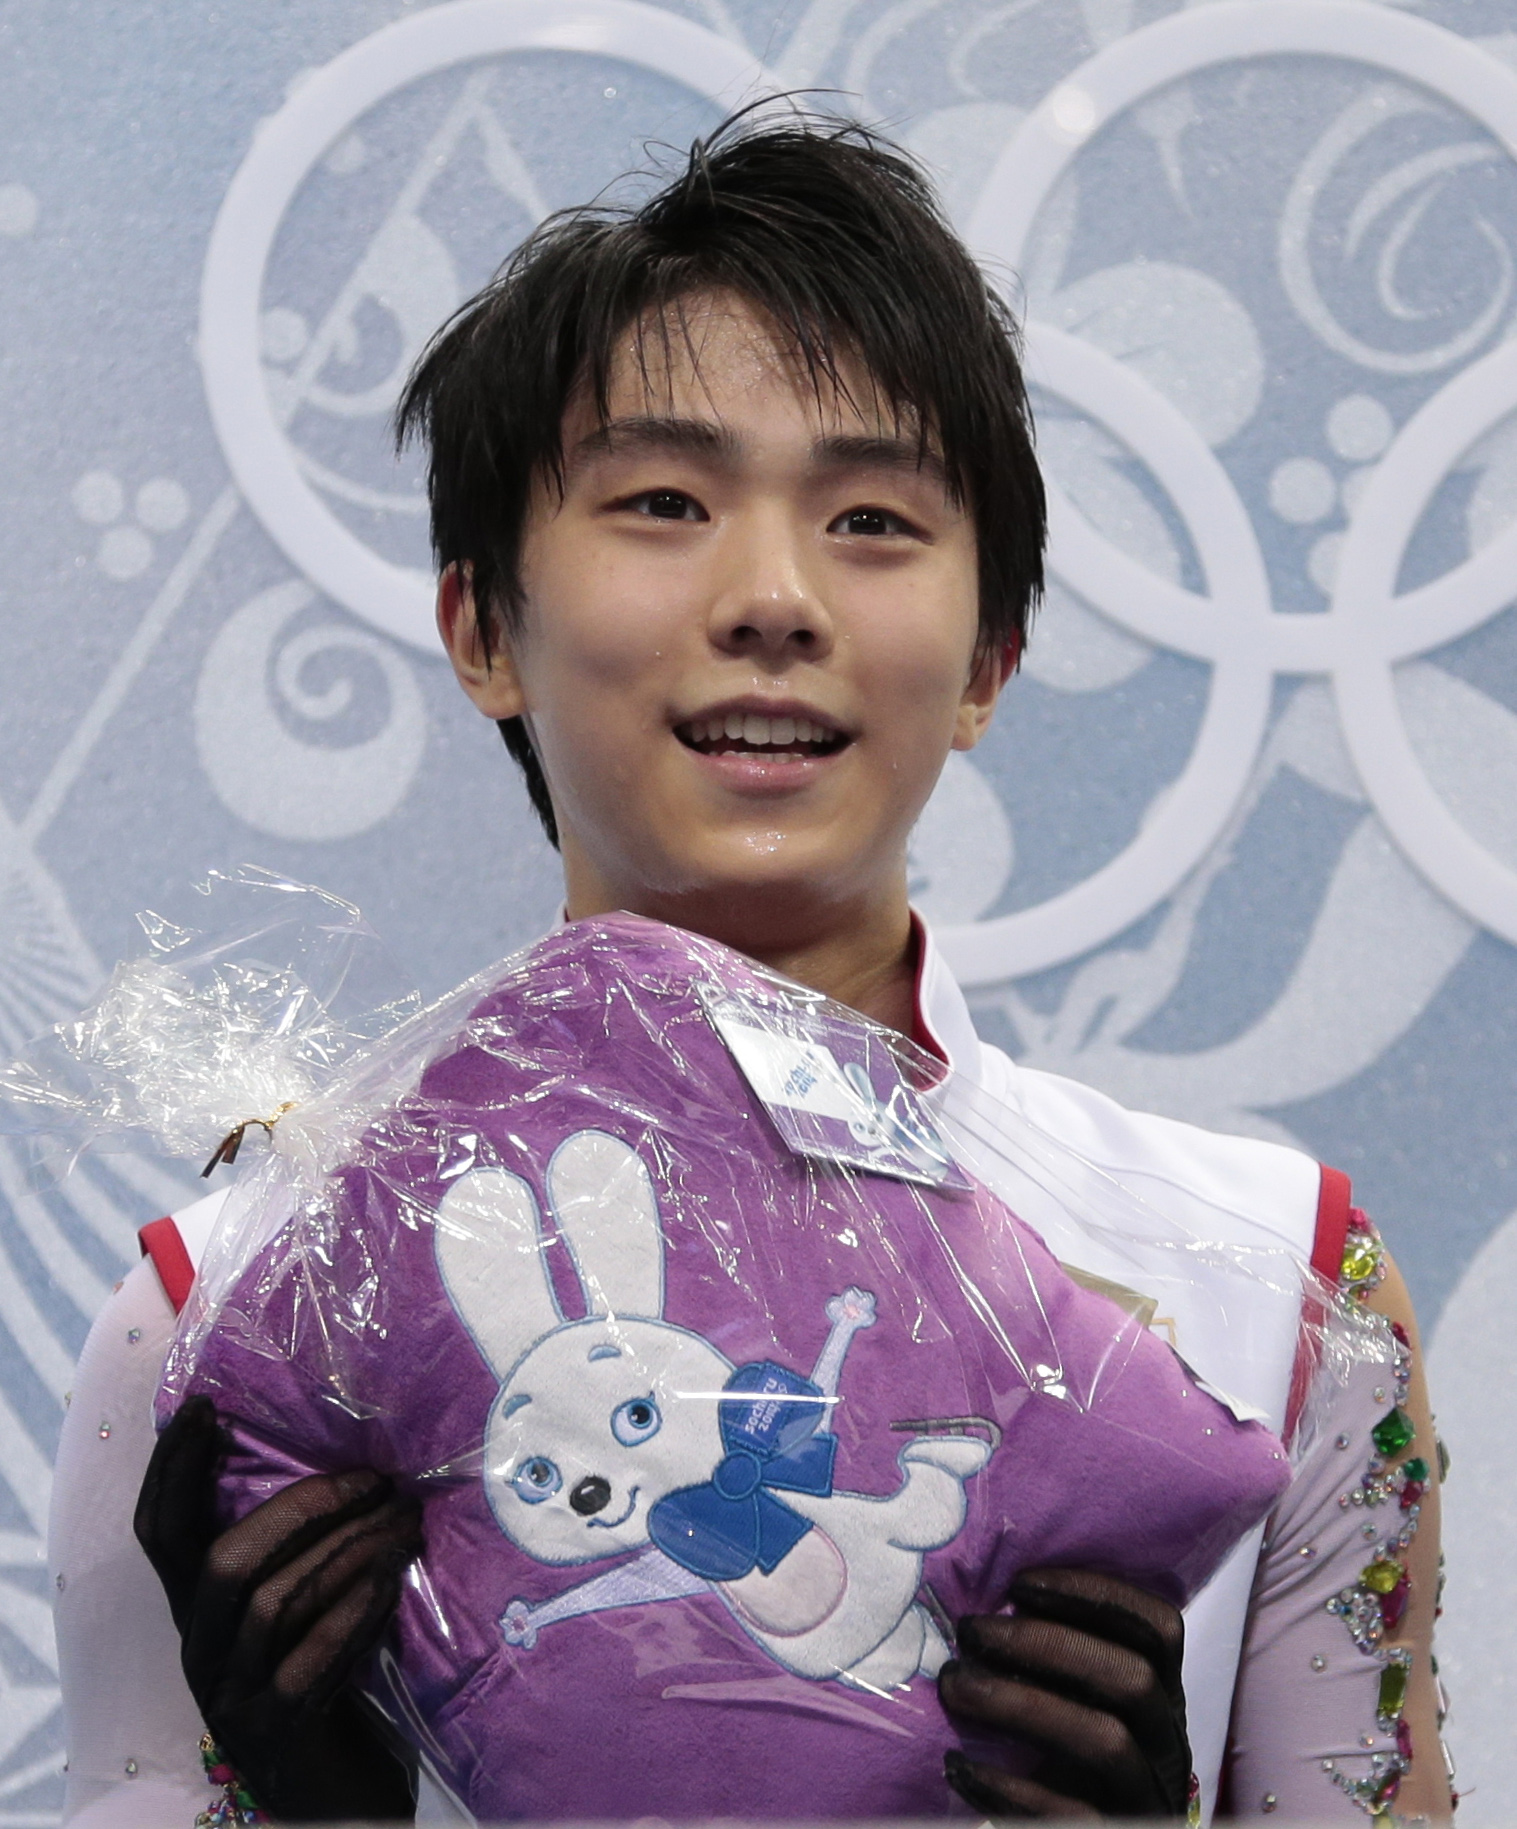 Yuzuru Hanyu of Japan holds an item given to him by a spectator as he sits in the results area after the men's free skate figure skating final at the Iceberg Skating Palace at the 2014 Winter Olympics, Friday, Feb. 14, 2014, in Sochi, Russia. (AP Photo/Ivan Sekretarev)